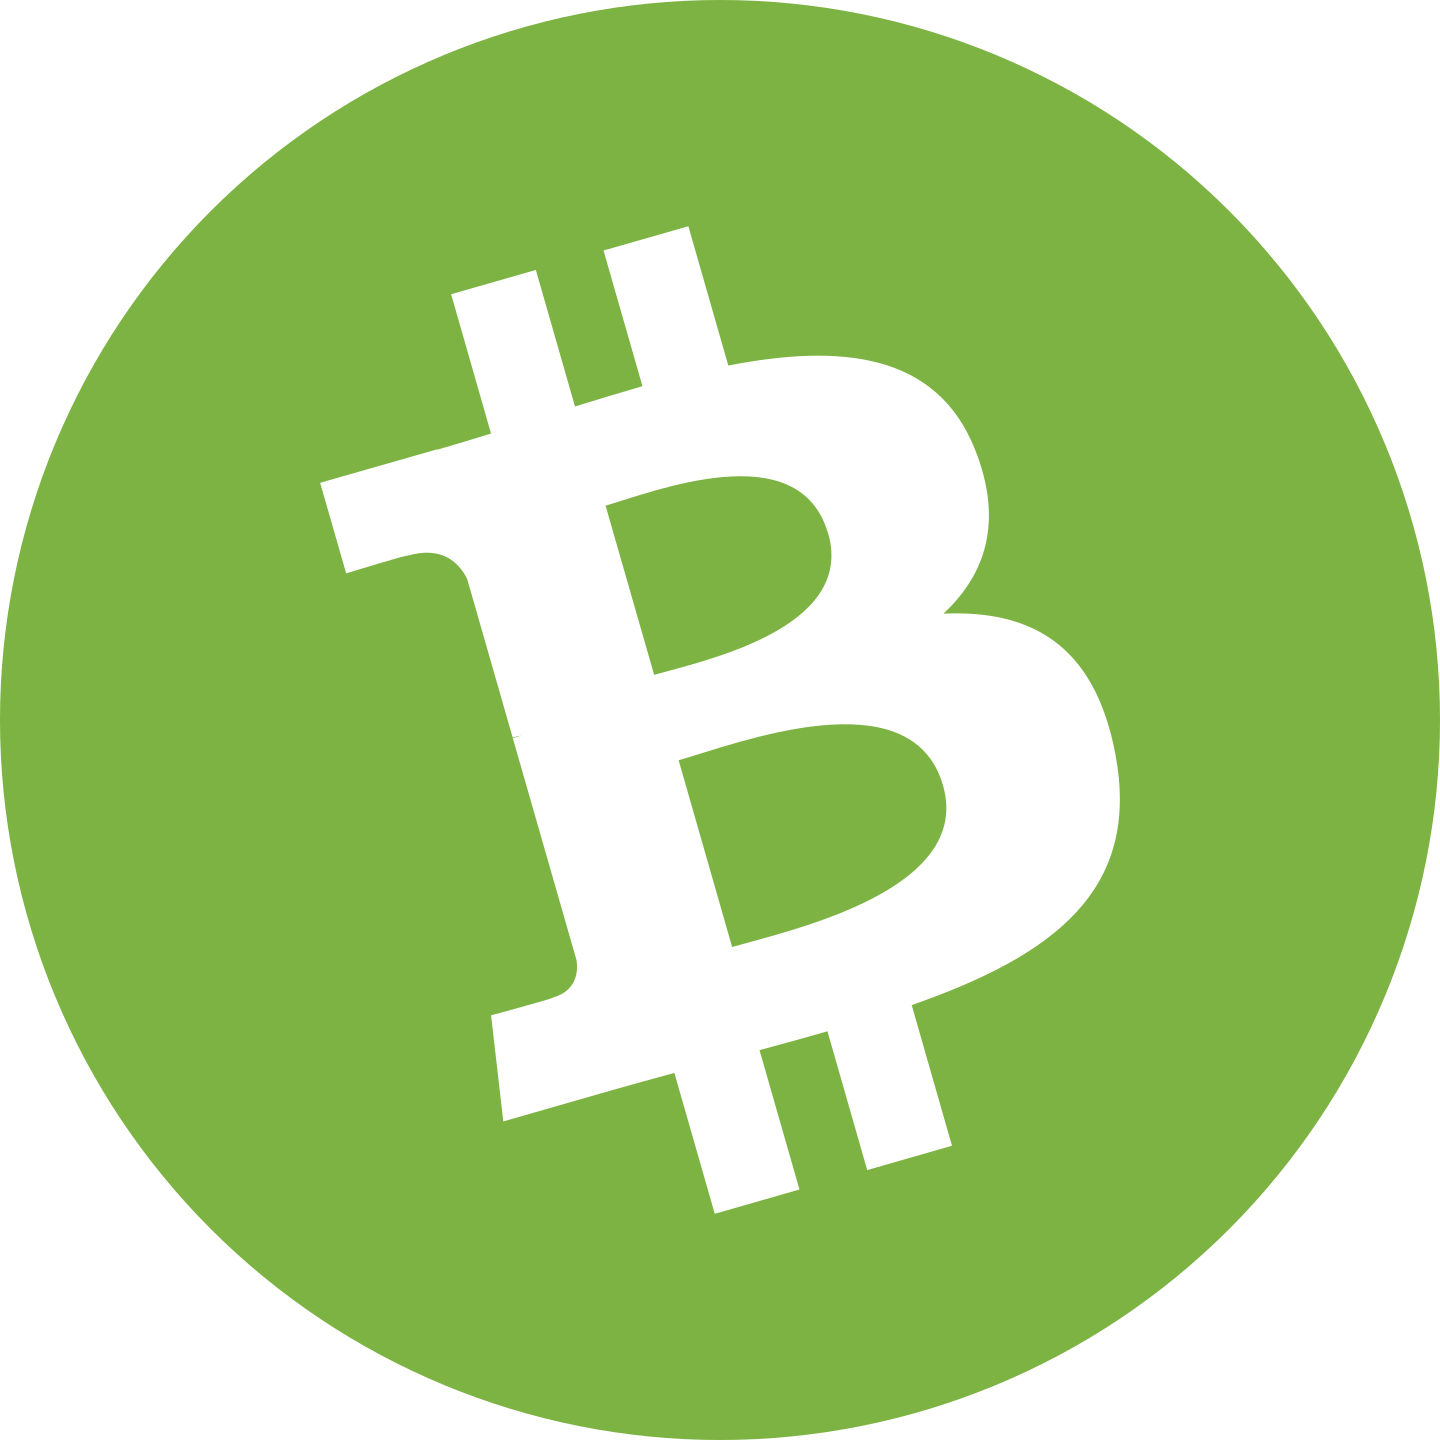 bitcoin cash logo 2 - Bitcoin Cash Logo